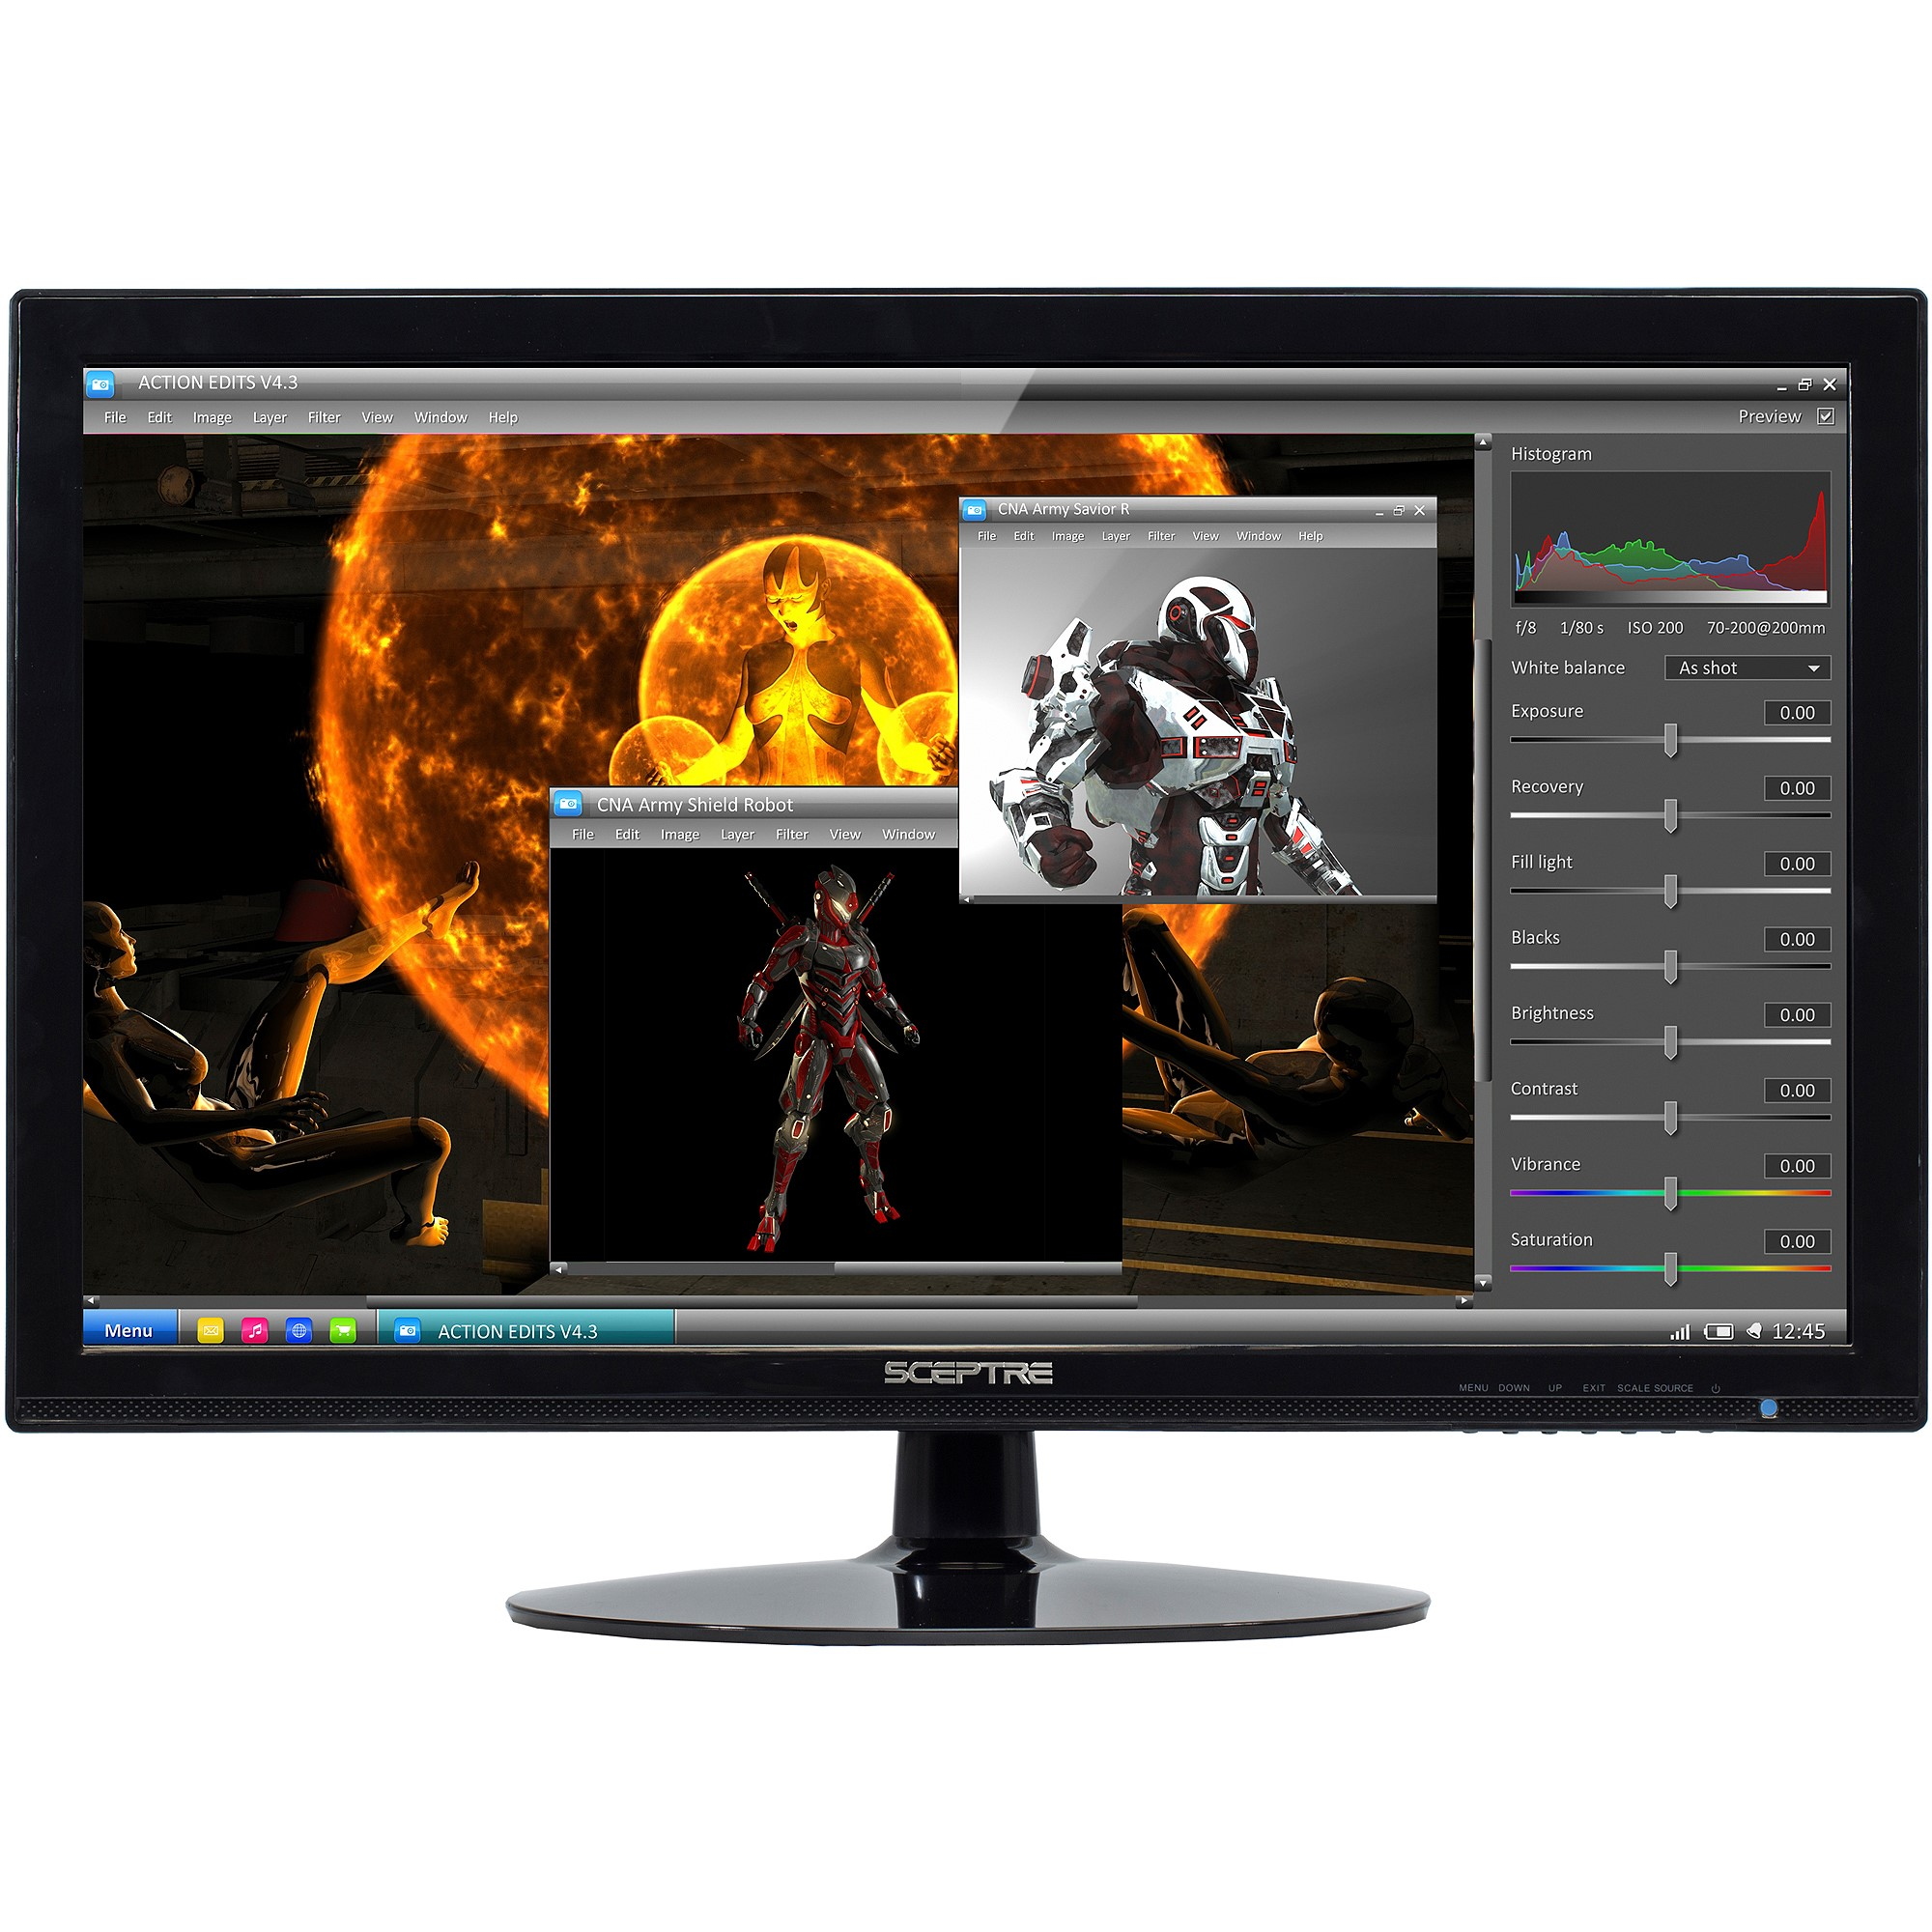 "Sceptre 24"" LED Full HD 1080p Monitor (E248W-1920 Black)"